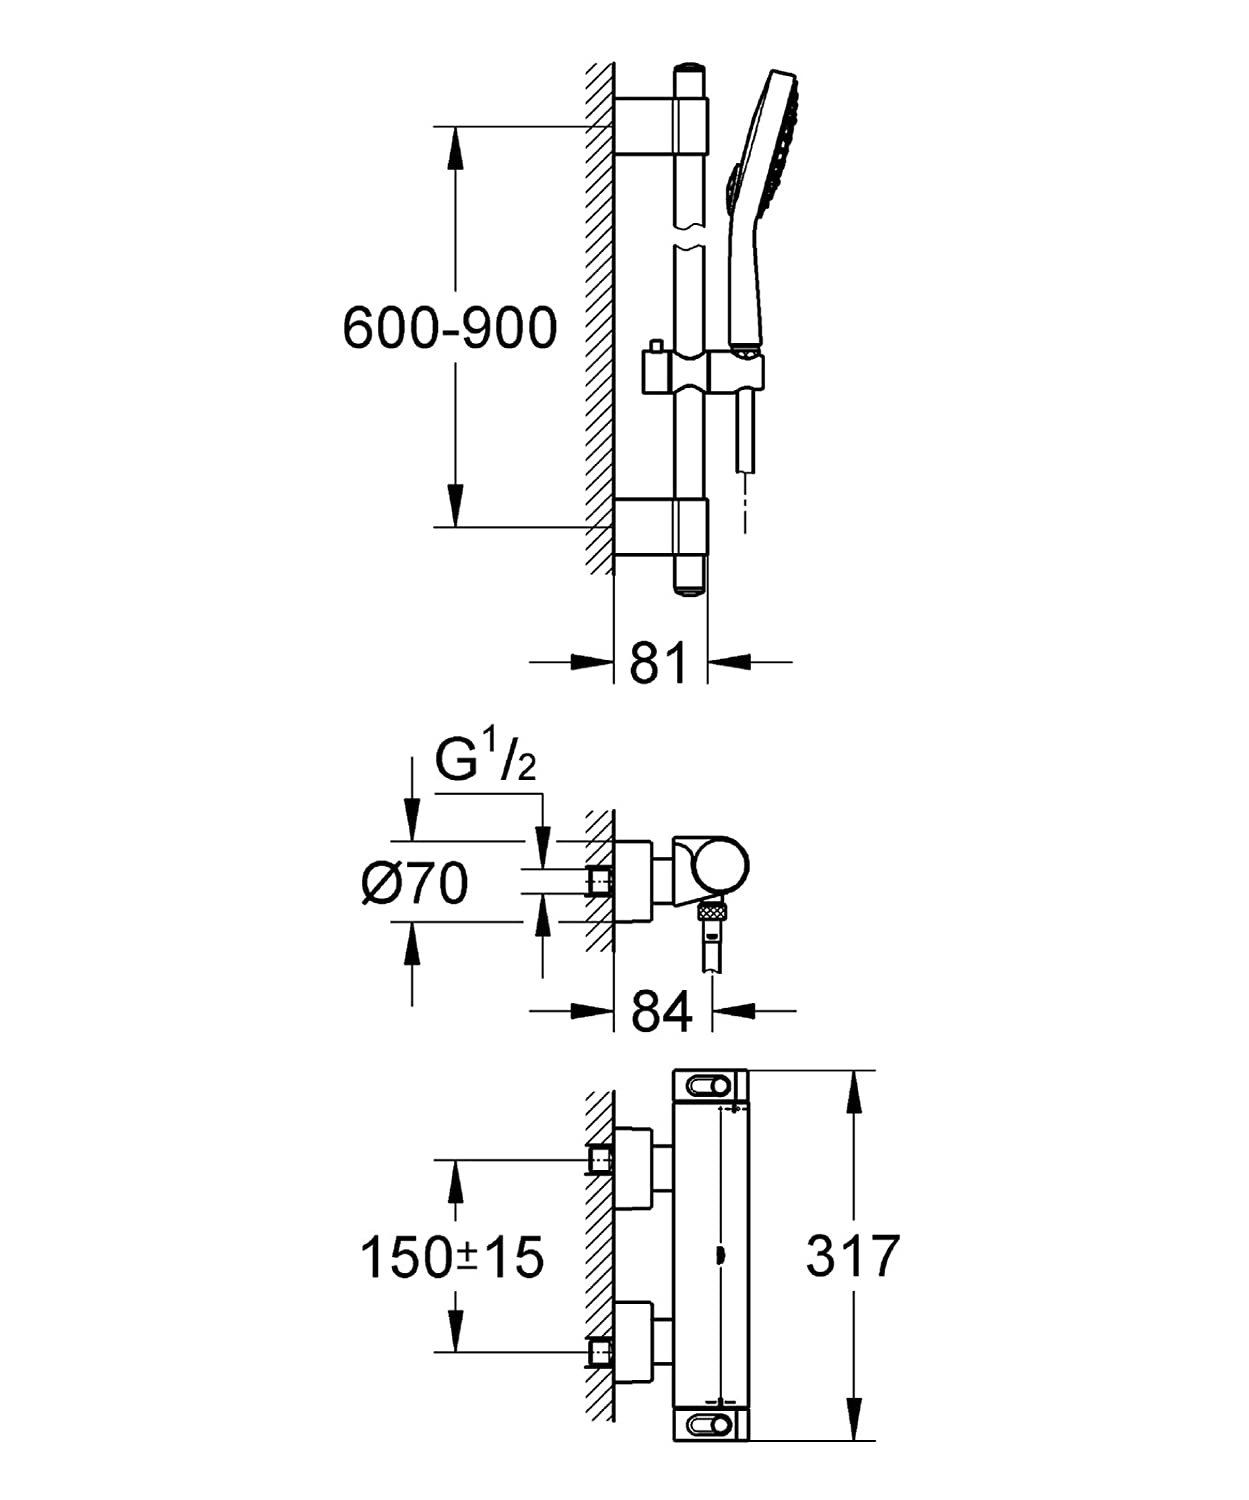 Grohe Thm Shower Mixer Grohtherm 2000 34482 With Showerset Ta1aw Electric Baseboard Heater Wiring Diagram Powersoul Chrome